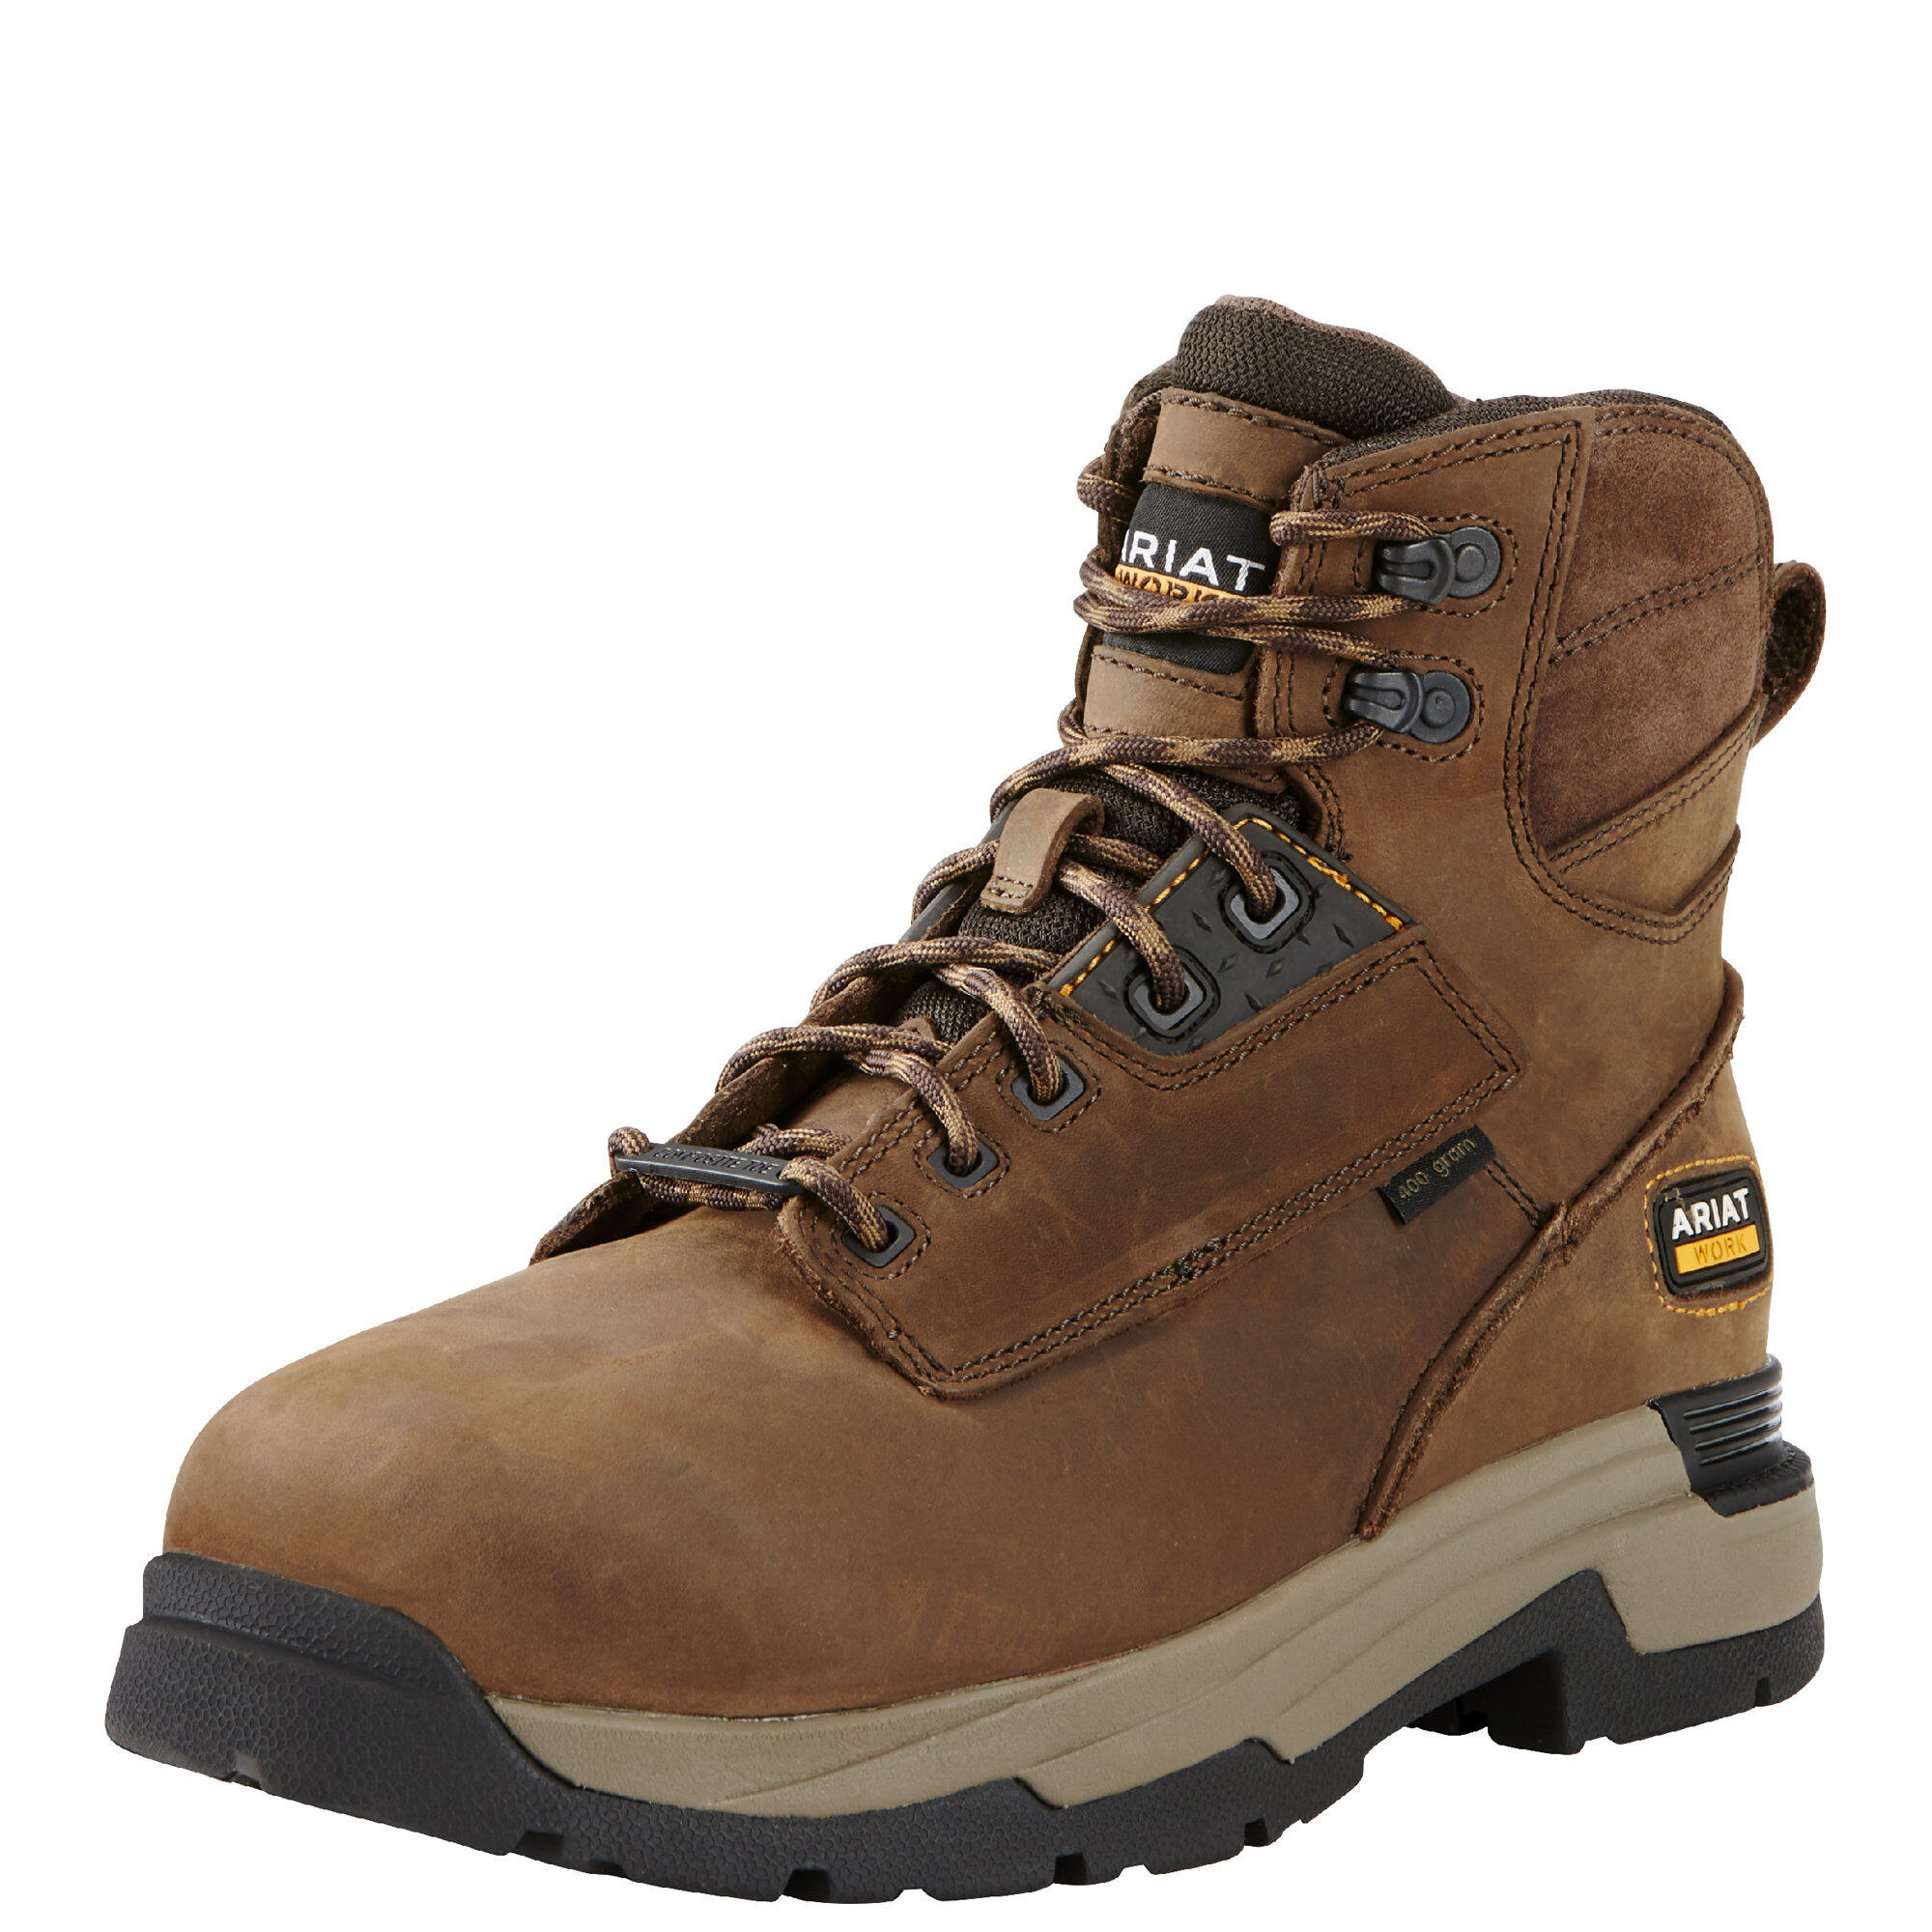 Ariat Mastergrip 6 Cheap Sale Free Shipping Buy Cheap Recommend Clearance Prices Clearance Footlocker Pictures JgGe2D